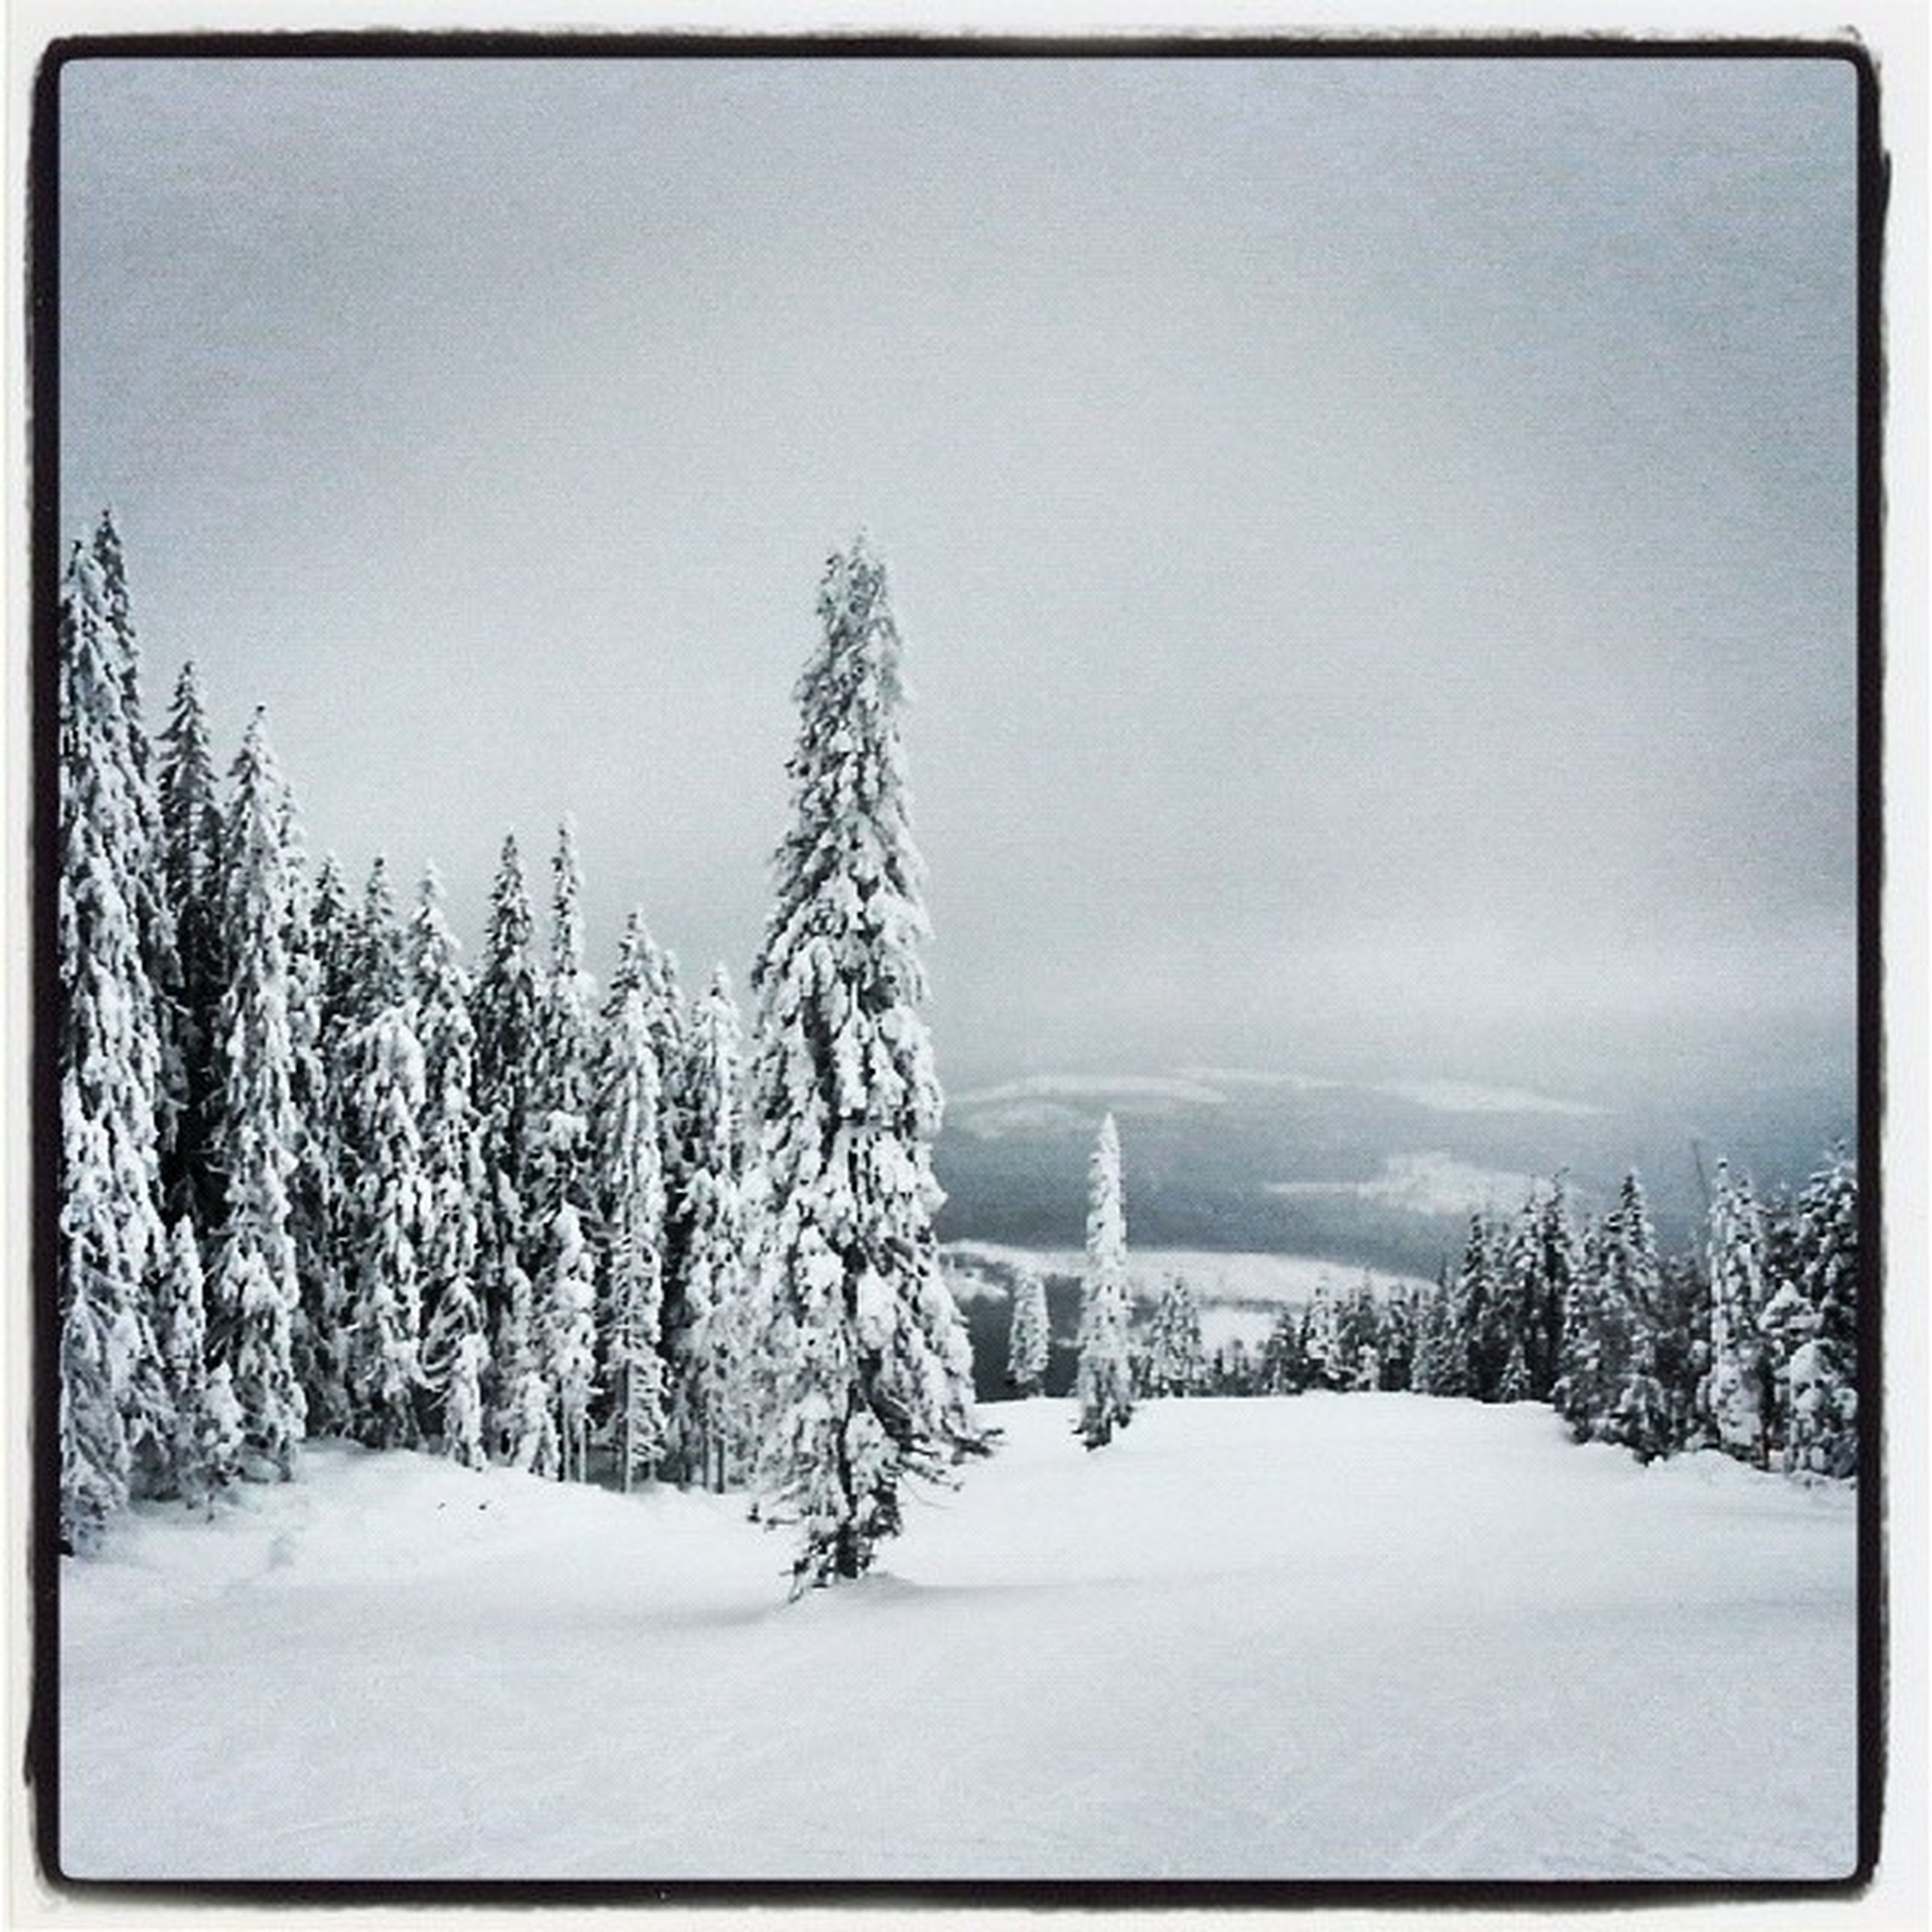 More snow! Rommealpin Romme_alpin Rommé Winter snow trees forest cold sweden dalarna ninacombat skiing